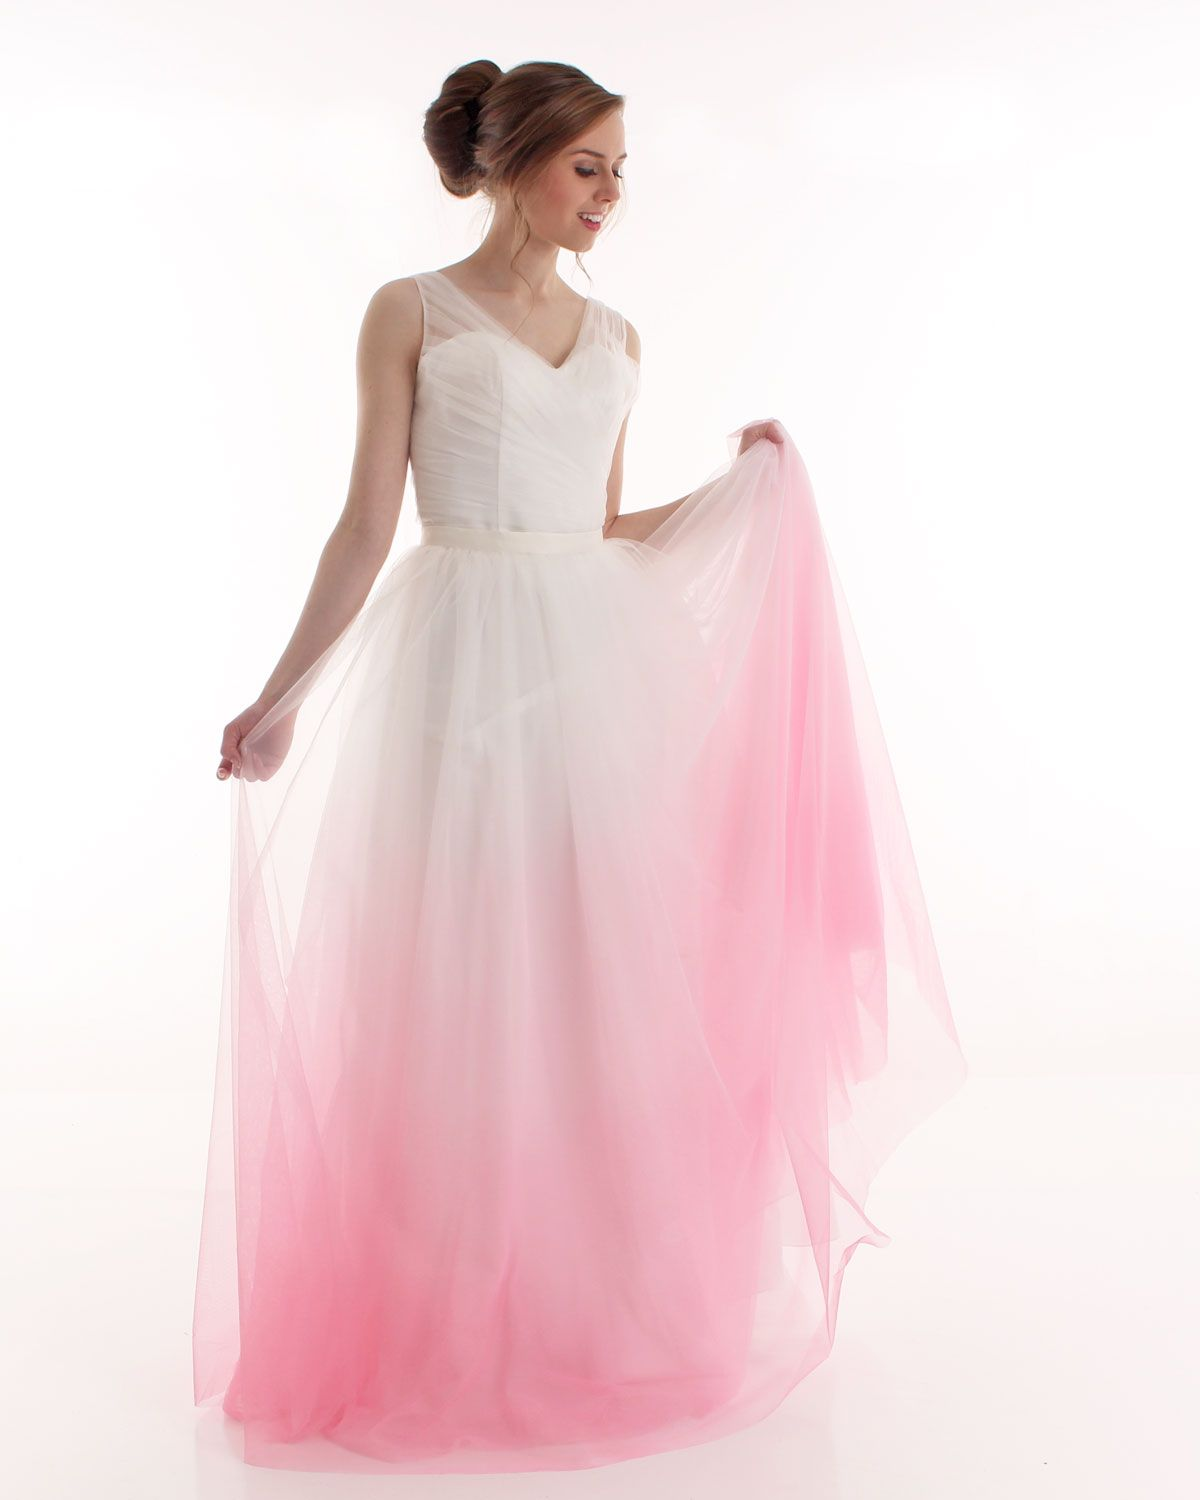 Ivory to blush pink ombre wedding skirt from Kaela Bridal